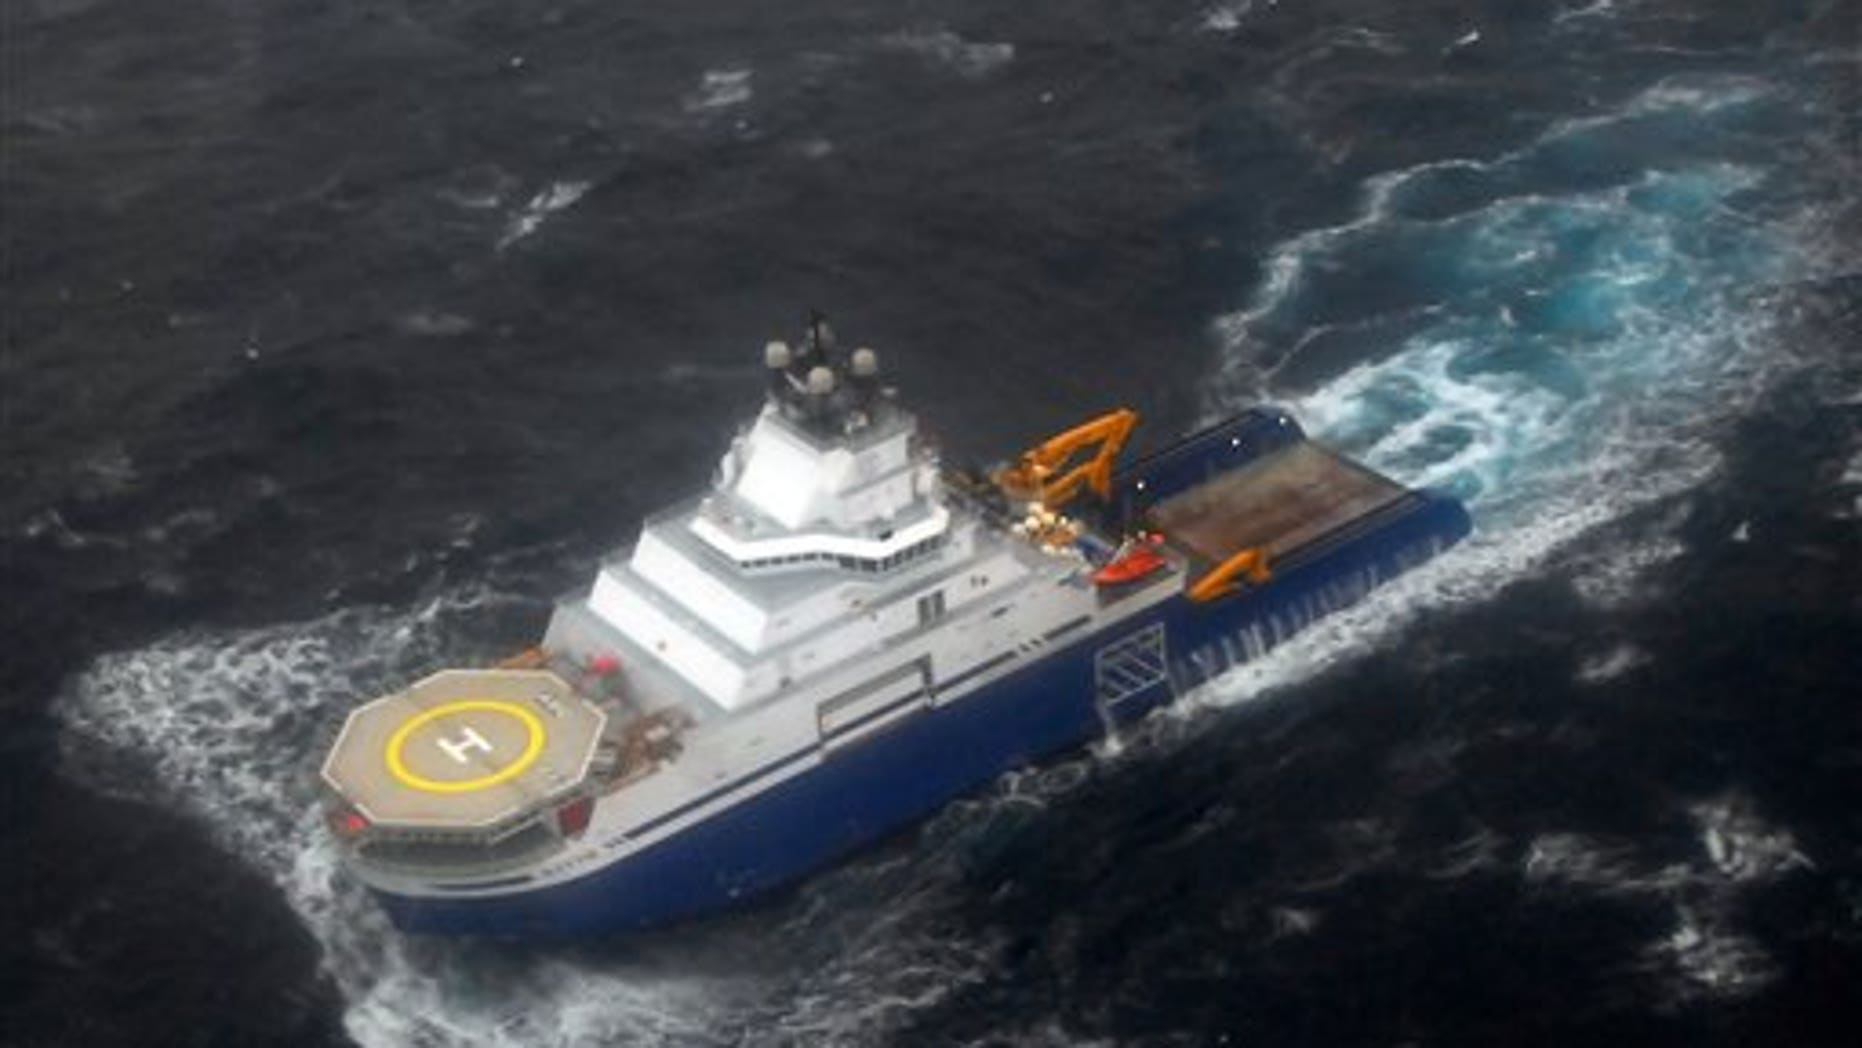 Dec. 30, 2012: The tug Aiviq travels at just under 2 mph with the mobile drilling unit Kulluk in tow 116 miles southwest of Kodiak City, Alaska.